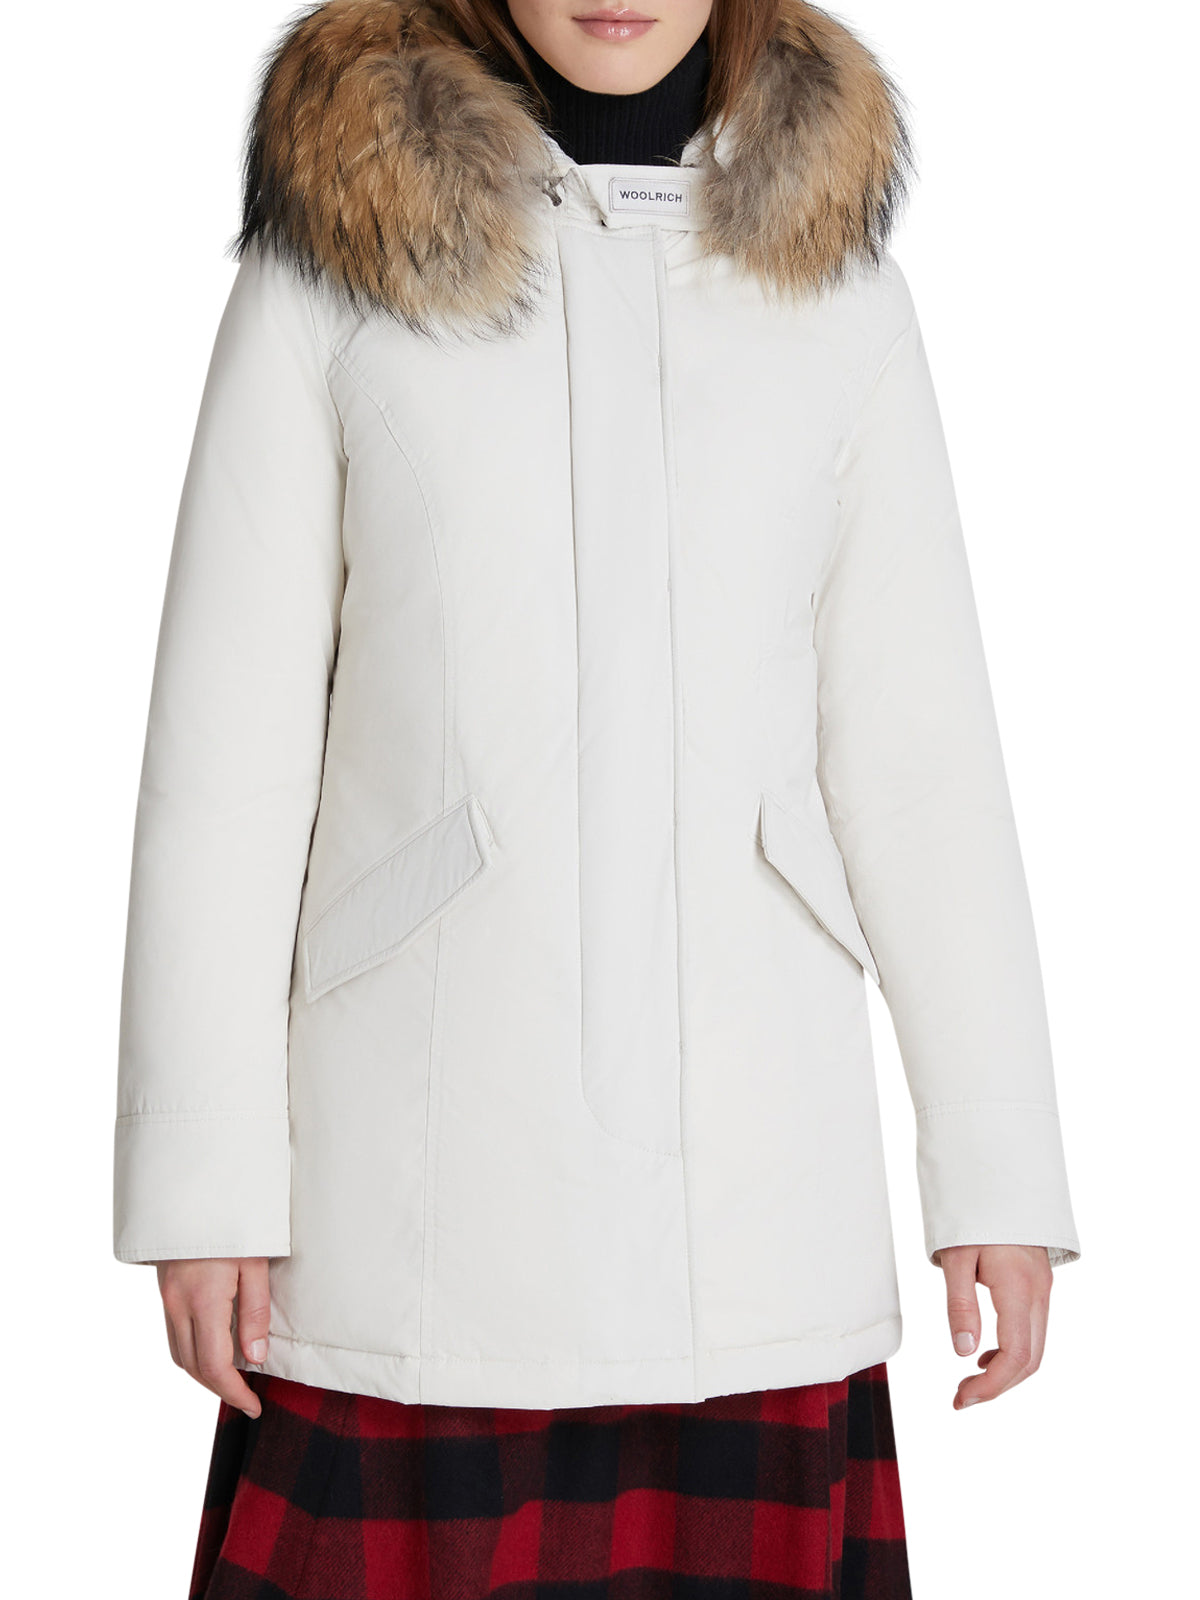 Luxury Artic parka